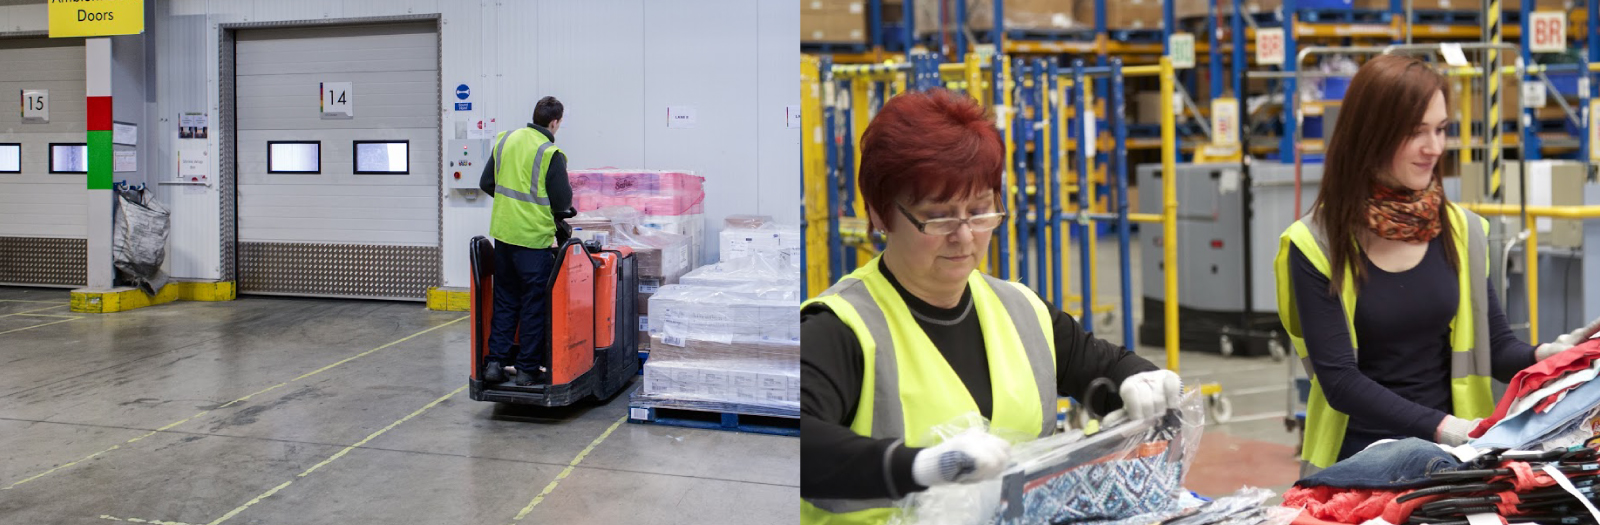 PMP Recruitment Warehouse Operatives in action